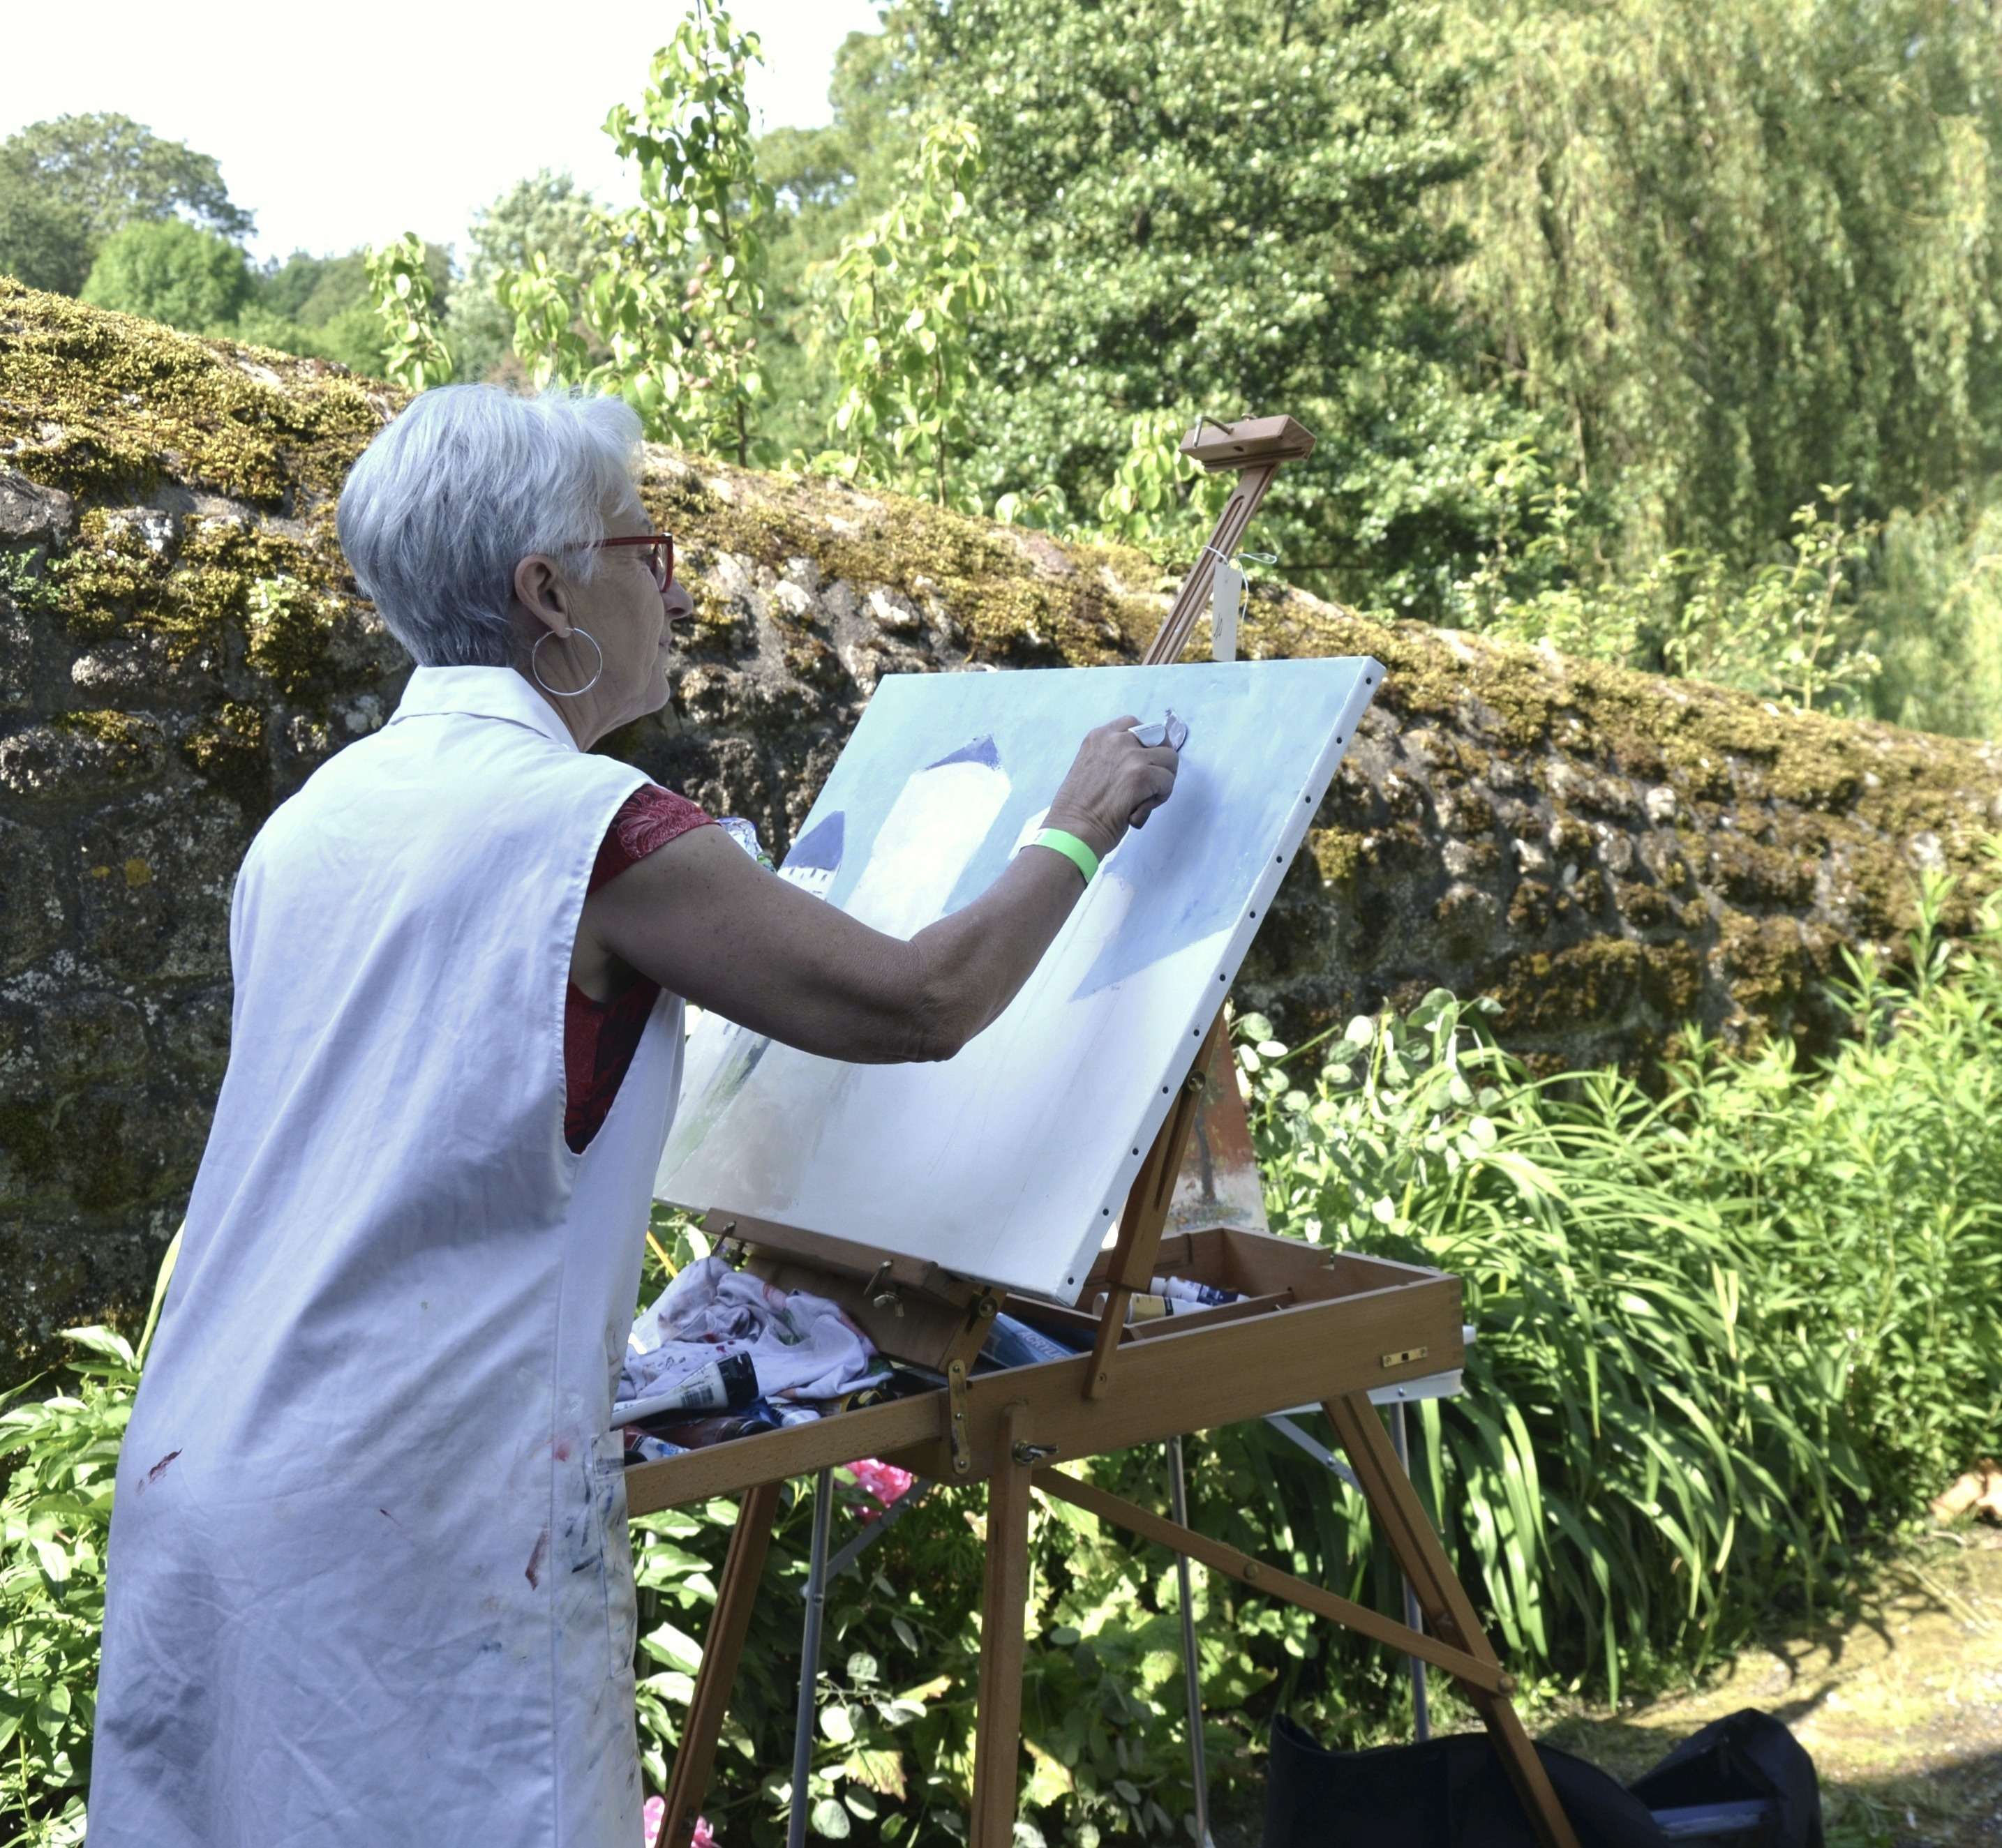 Painting in the garden in Lassay-les-Chateaux, France